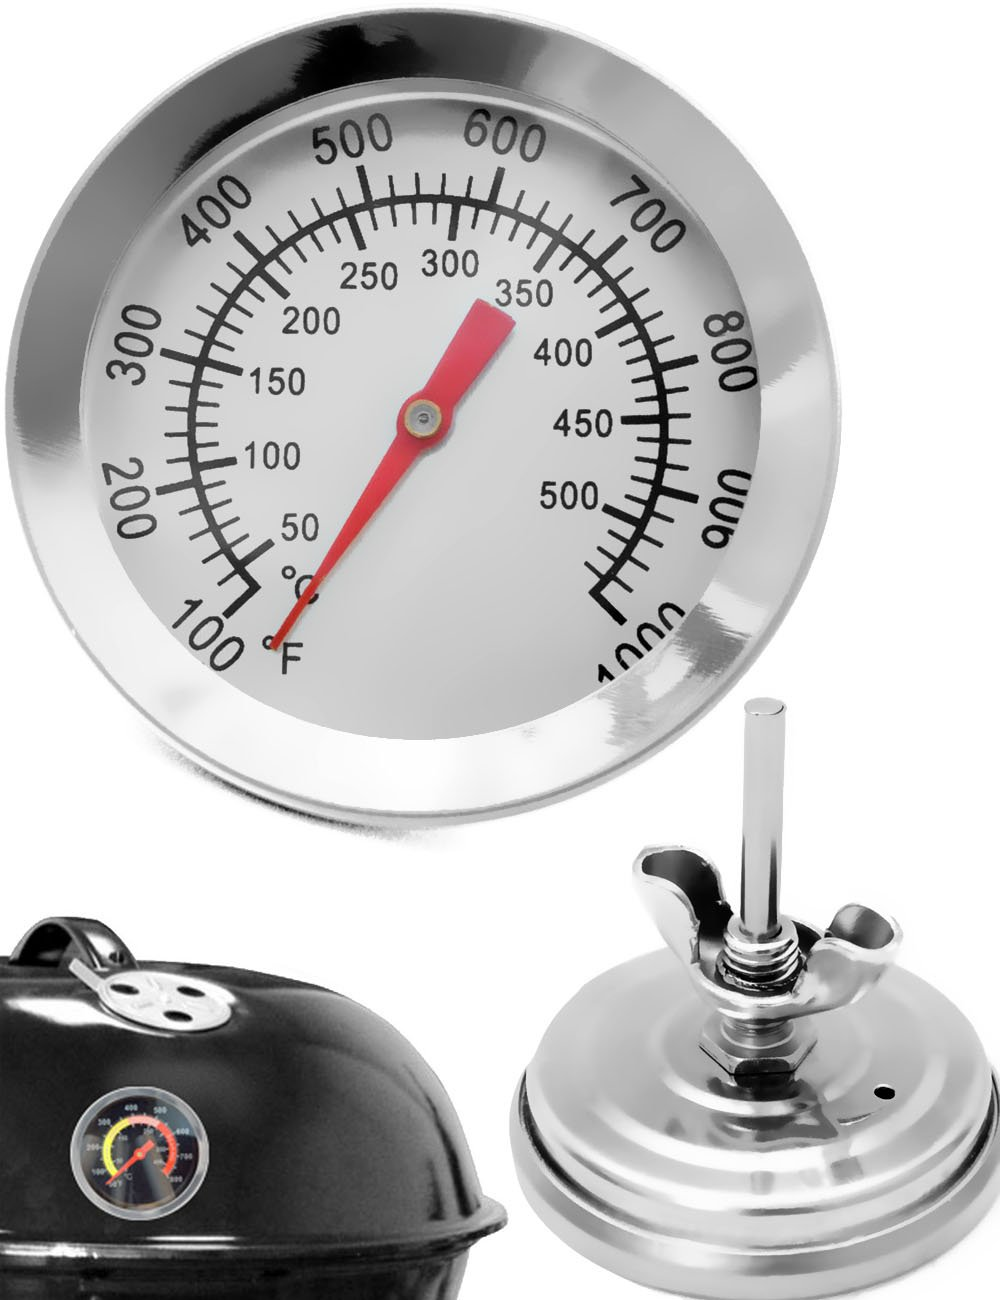 Home Tools. EU–Temperature Resistant Analogue Barbecue BBQ Food Probe for Retrofitting for cookers Roasters Smoker | 10°C to 500°C display 5cm Diameter with Screw Fastening Diameter 8mm Bore HomeTools.eu